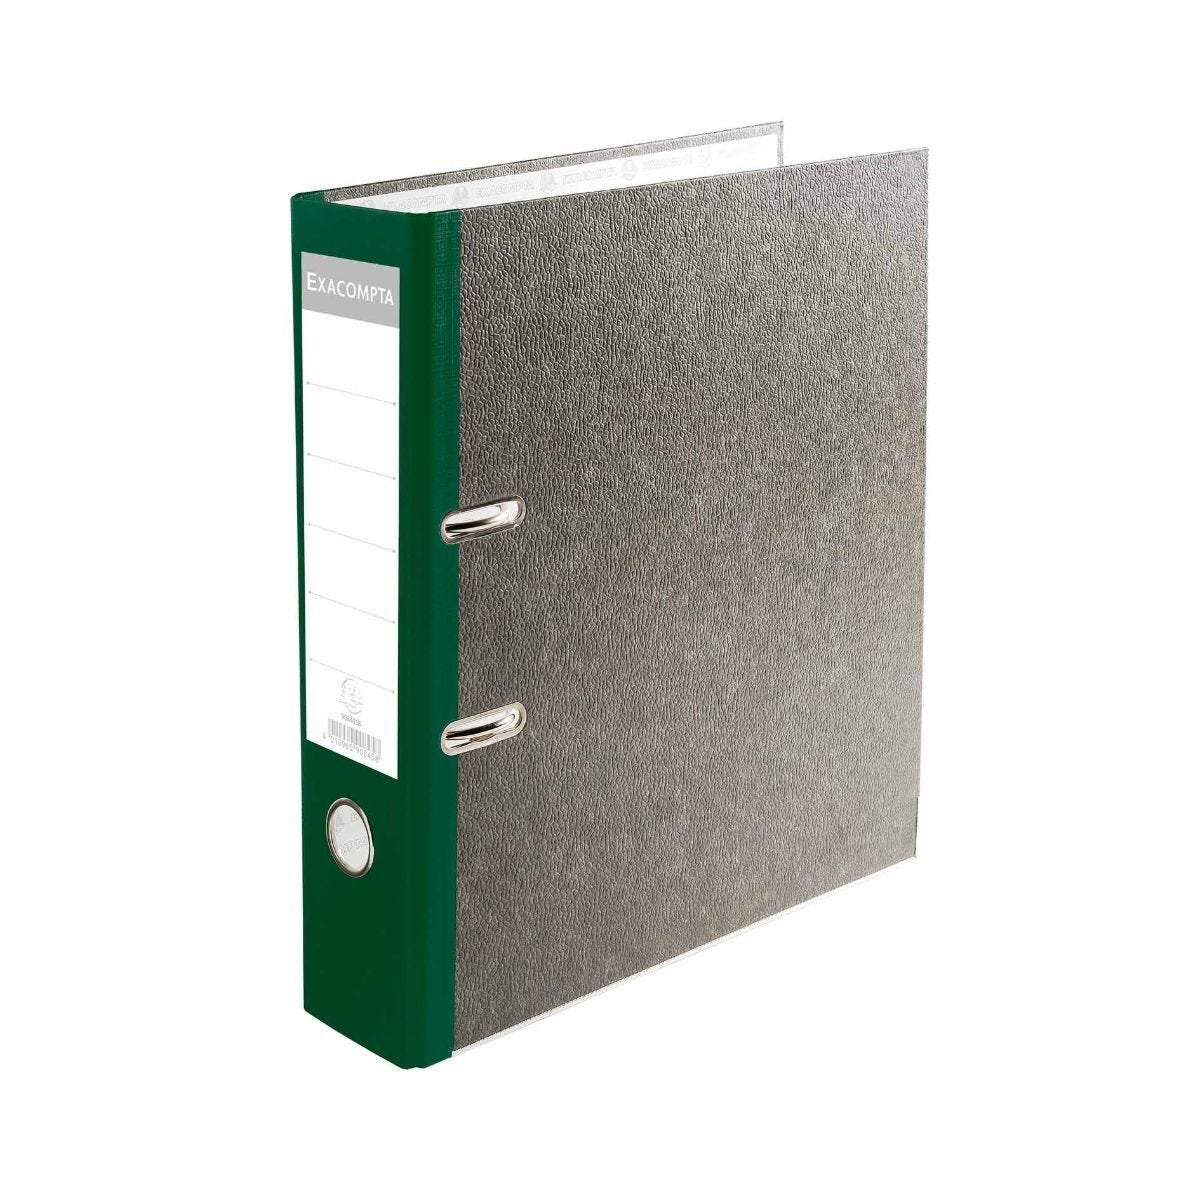 Exacompta PremTouch Lever Arch File A4 80mm Pack of 20 Green